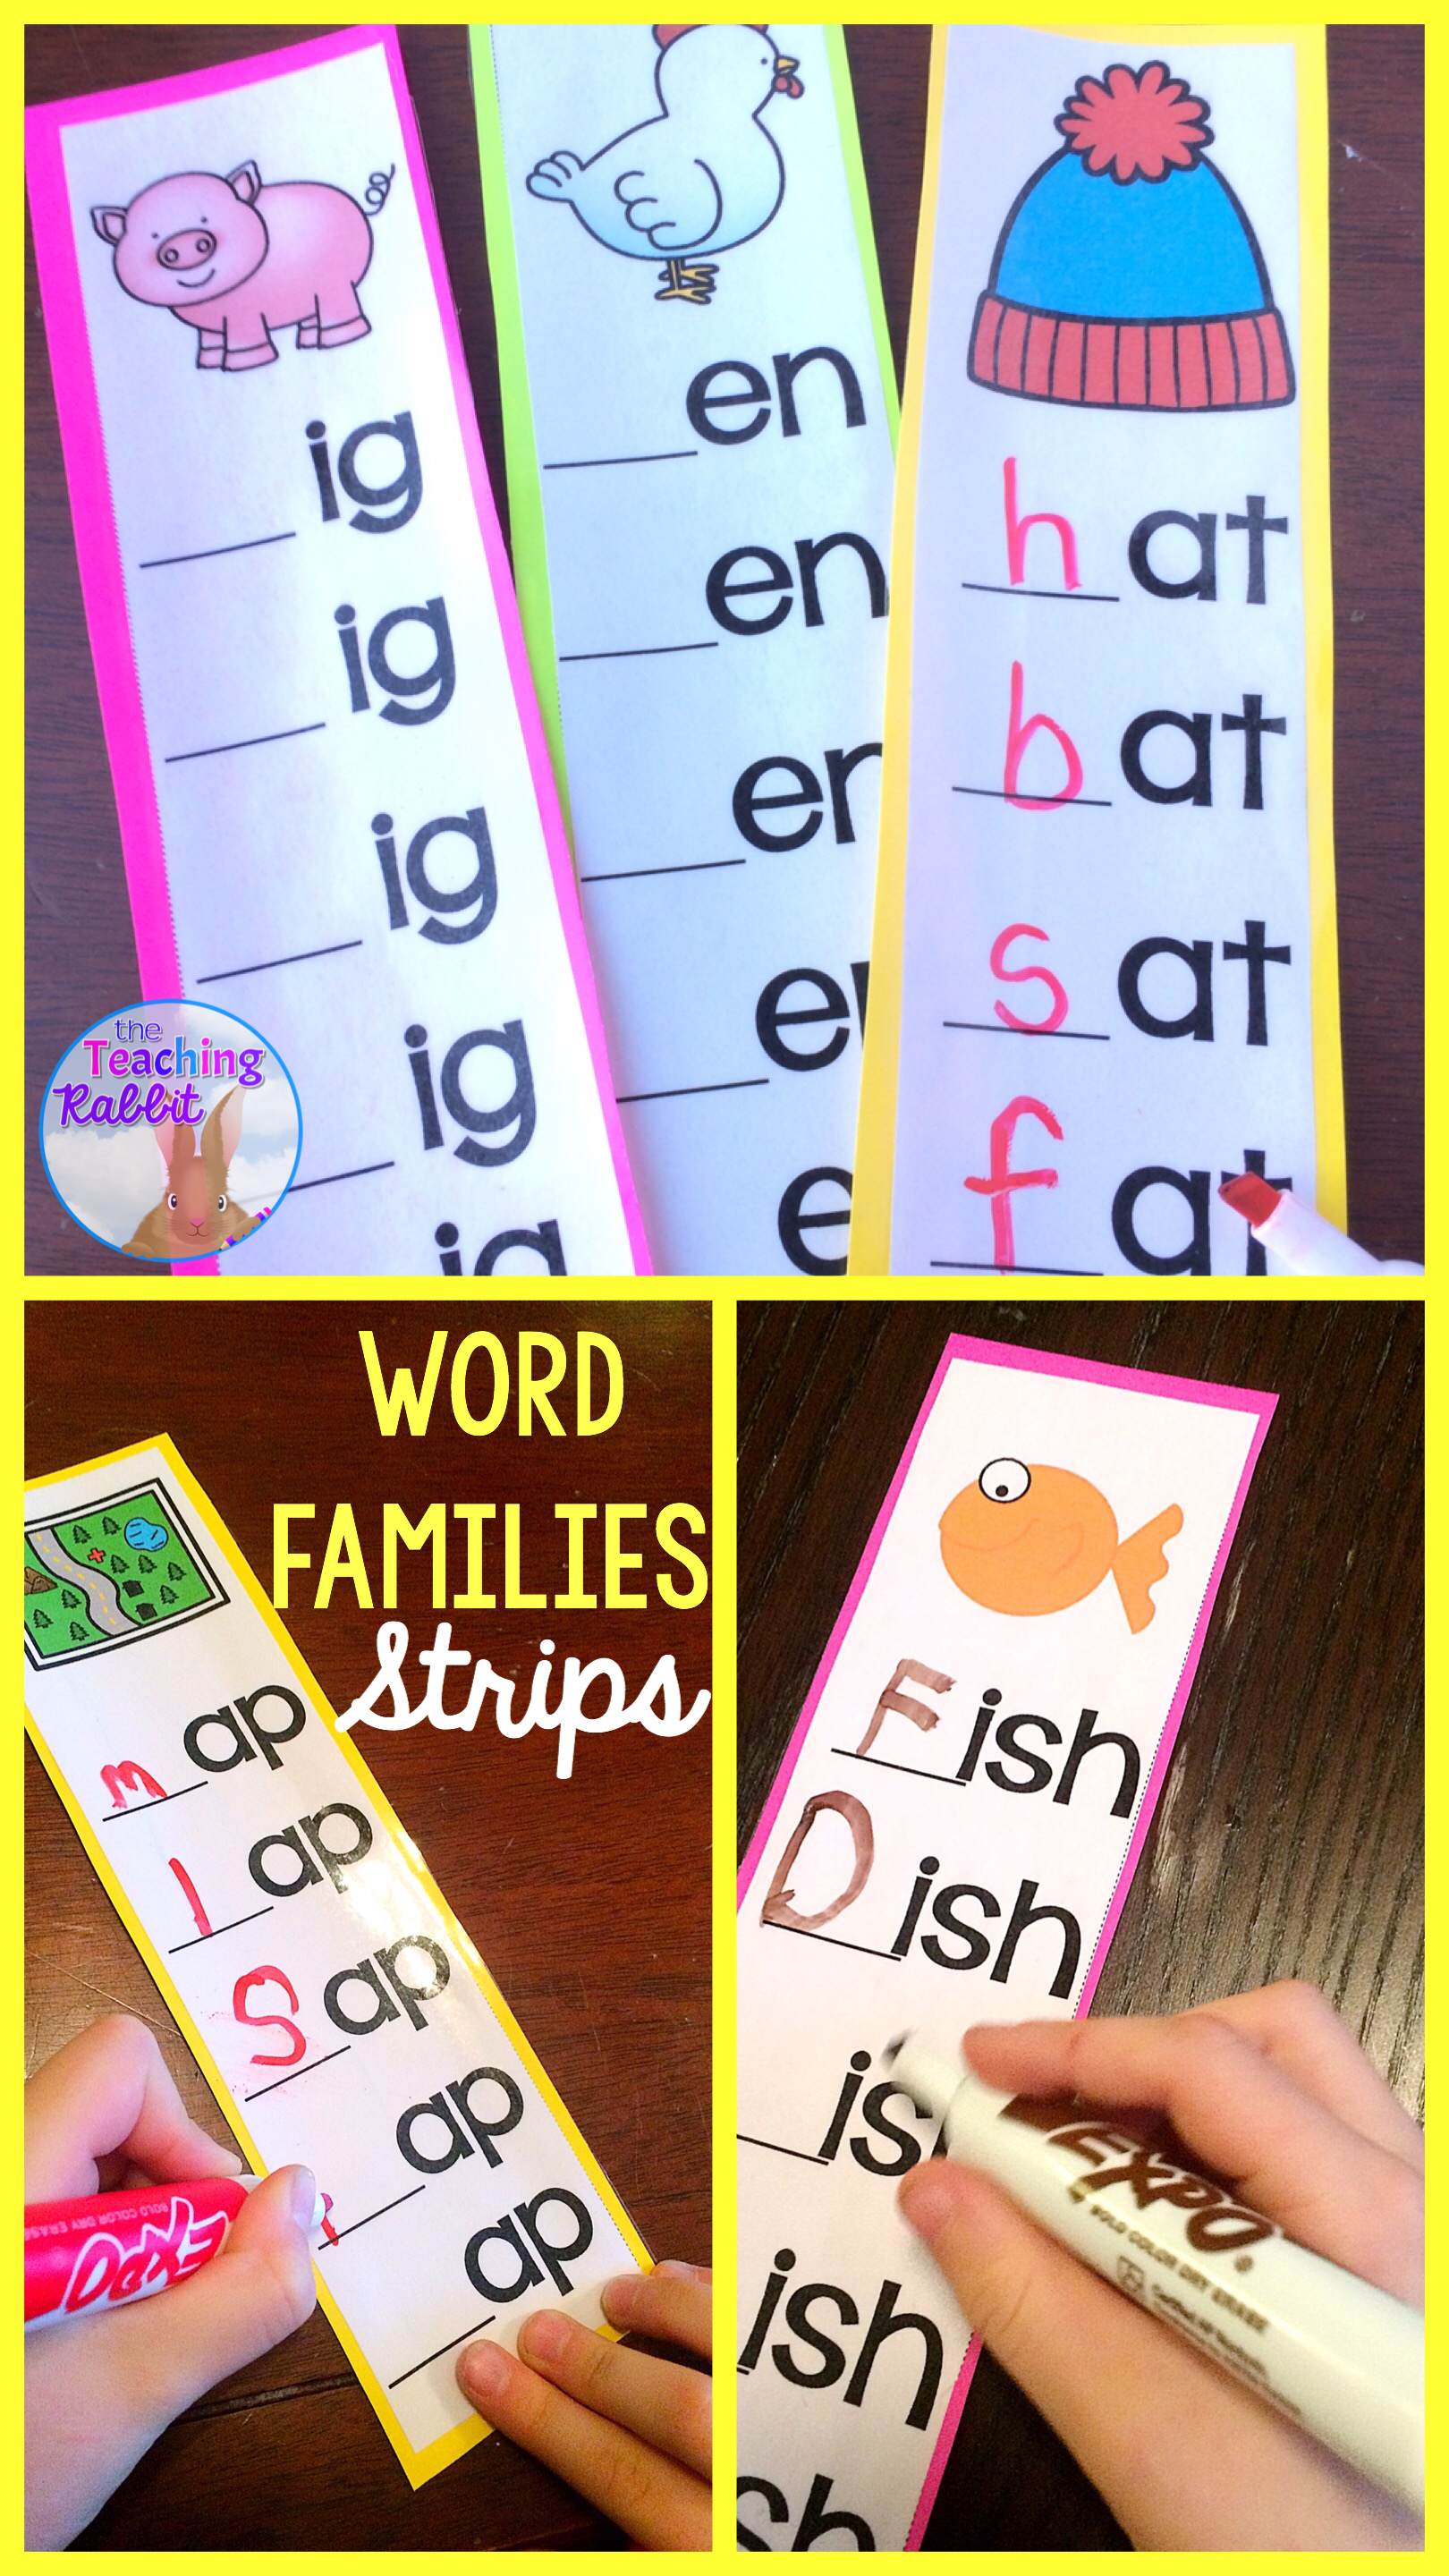 Word Families Strips Distance Learning Word Families First Grade Words Learning Activities [ 2880 x 1620 Pixel ]